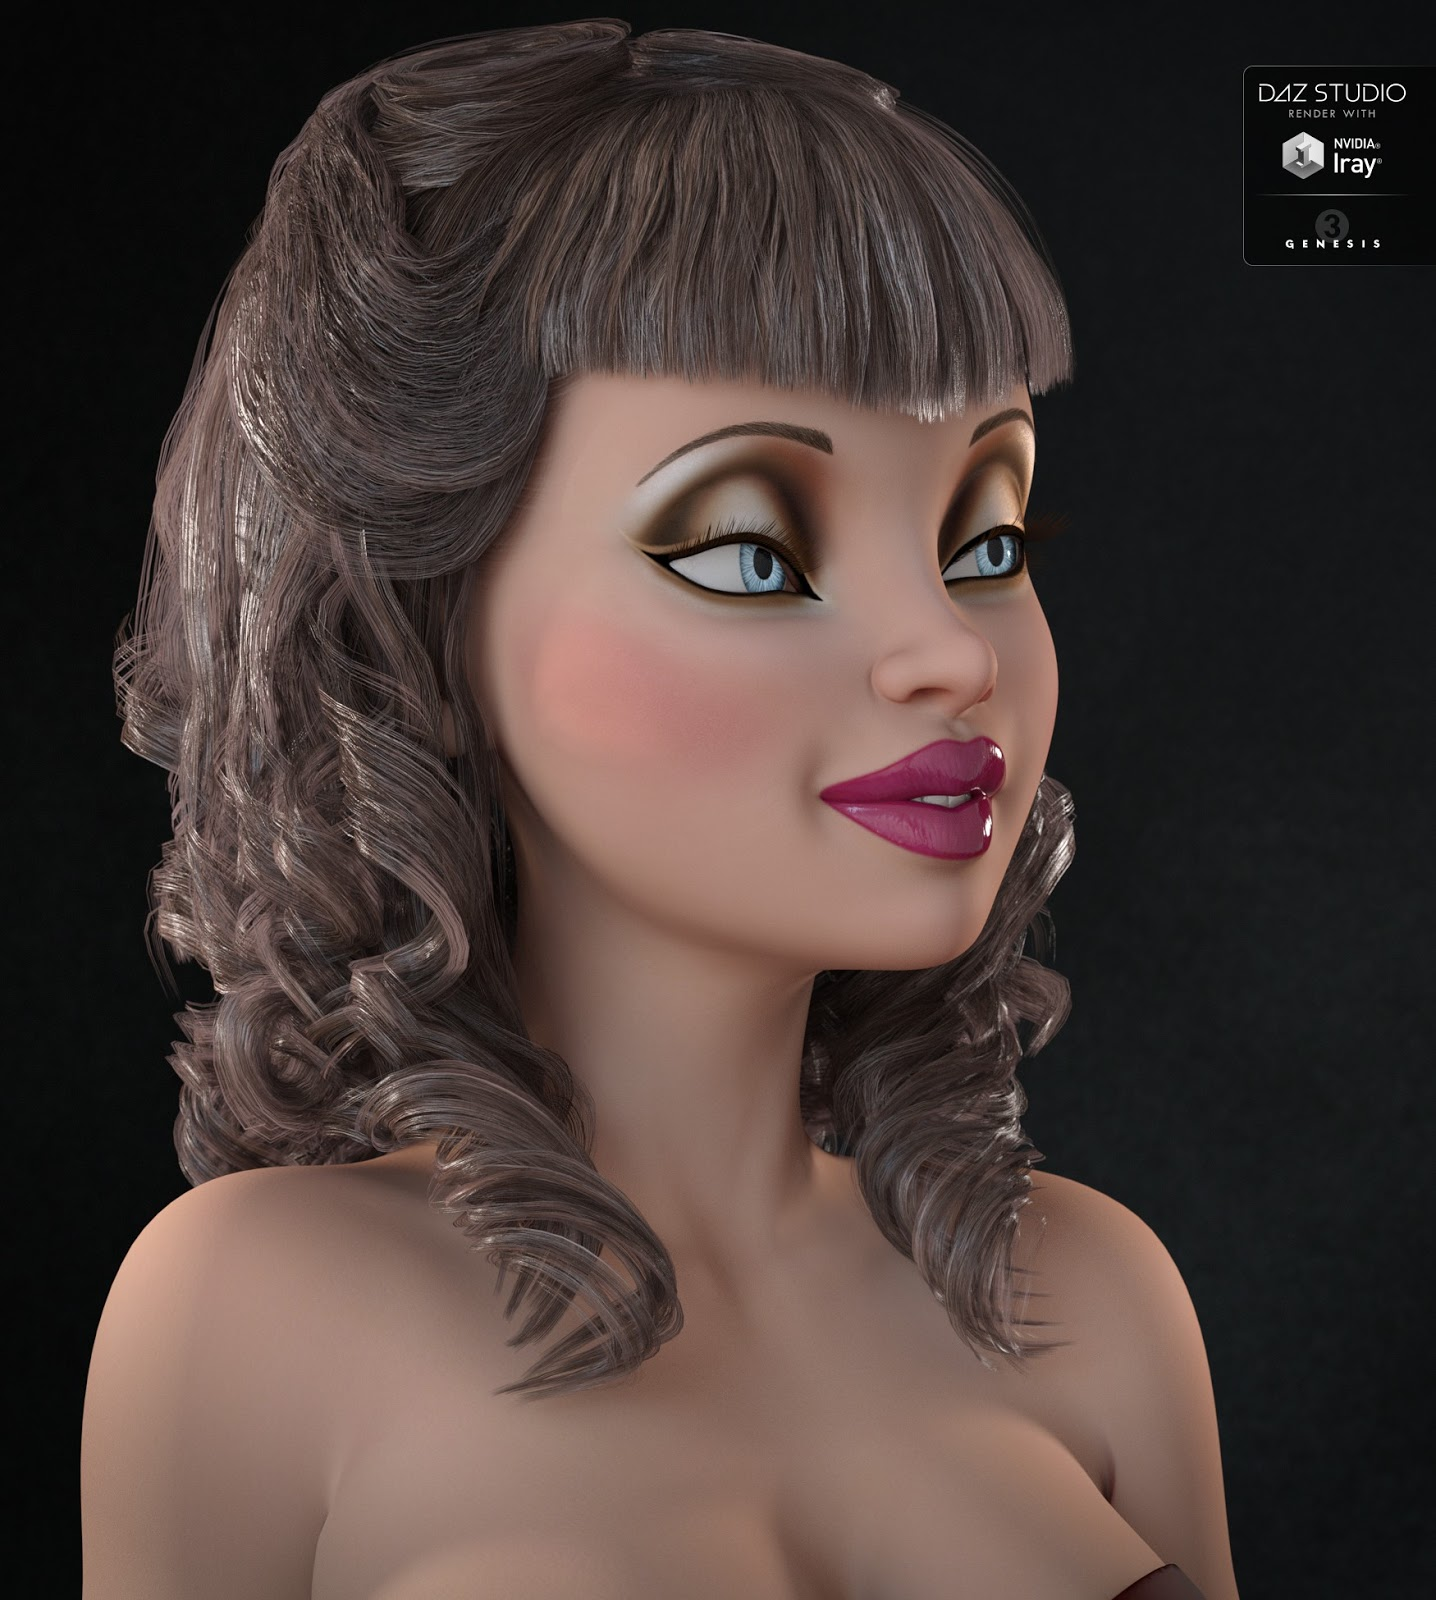 download daz studio 3 for free daz 3d the girl 7